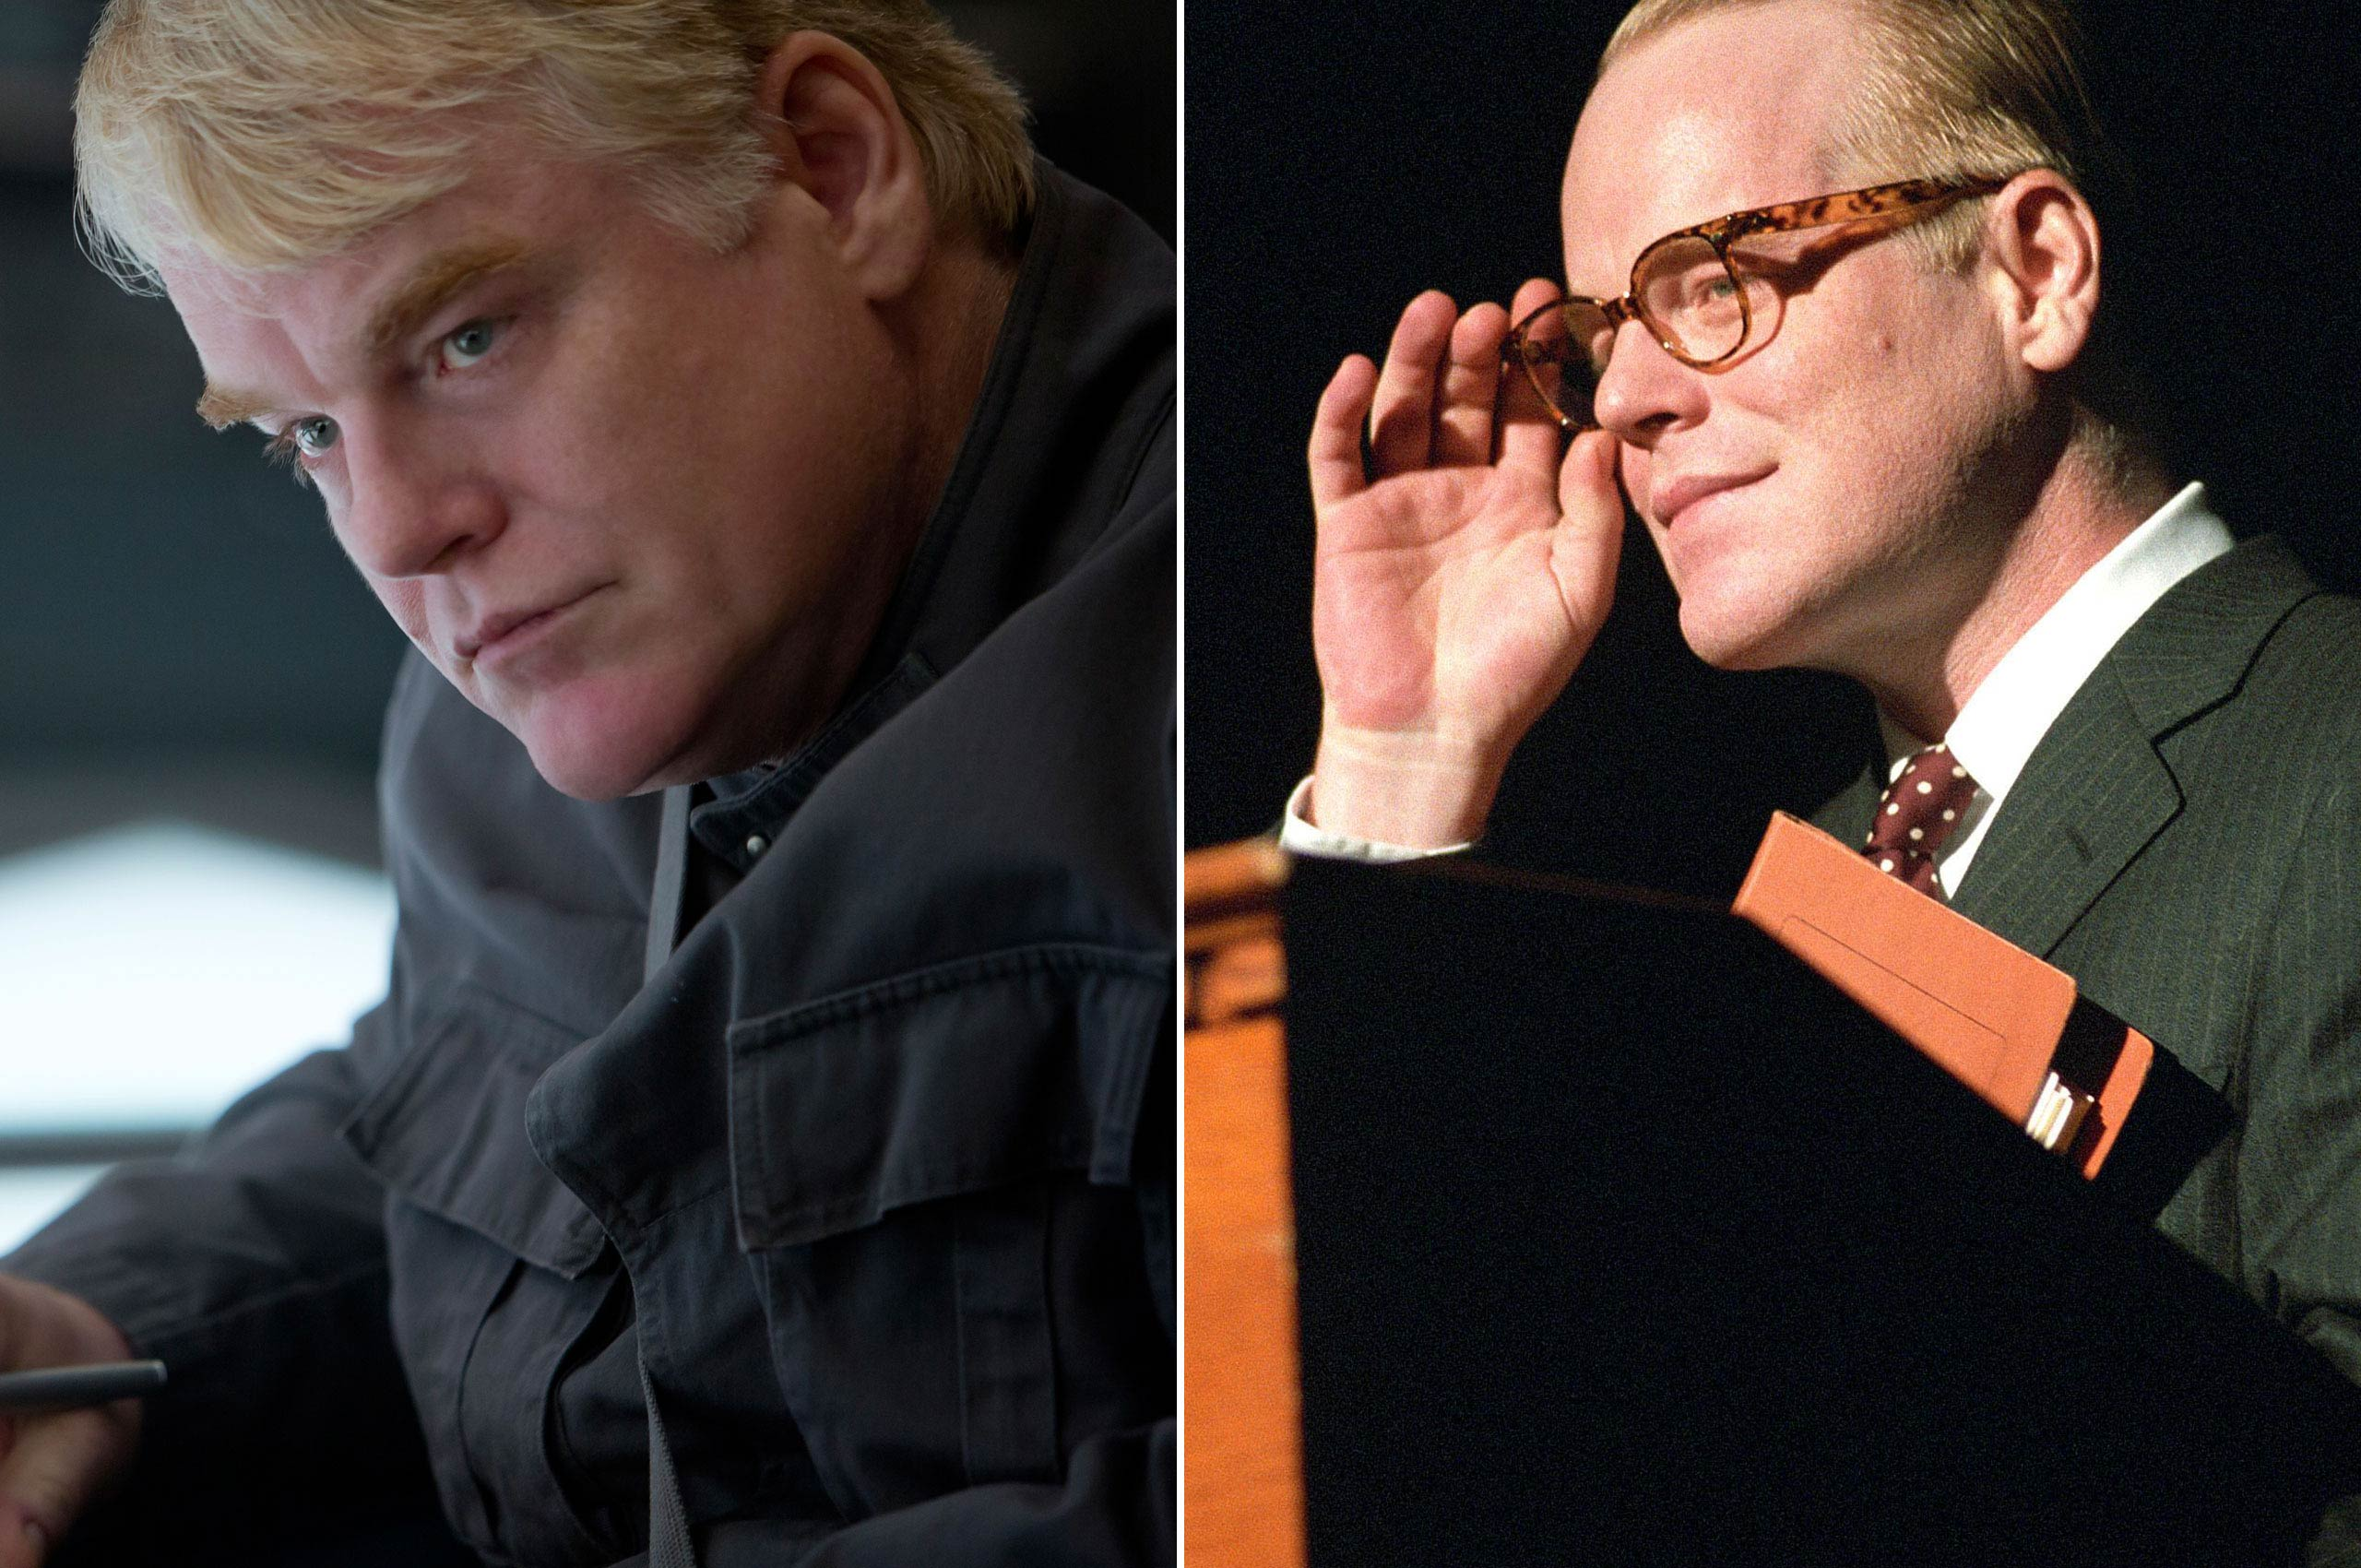 The late Philip Seymour Hoffman brings his considerable talent to the <i>Hunger Games</i> as the Head Gamemaker turned rebel Plutarch Heavensbee, but years prior, he portrayed the author Truman Capote in the 2005 biopic <i>Capote</i>, a role for which he would win an Oscar for Best Actor.